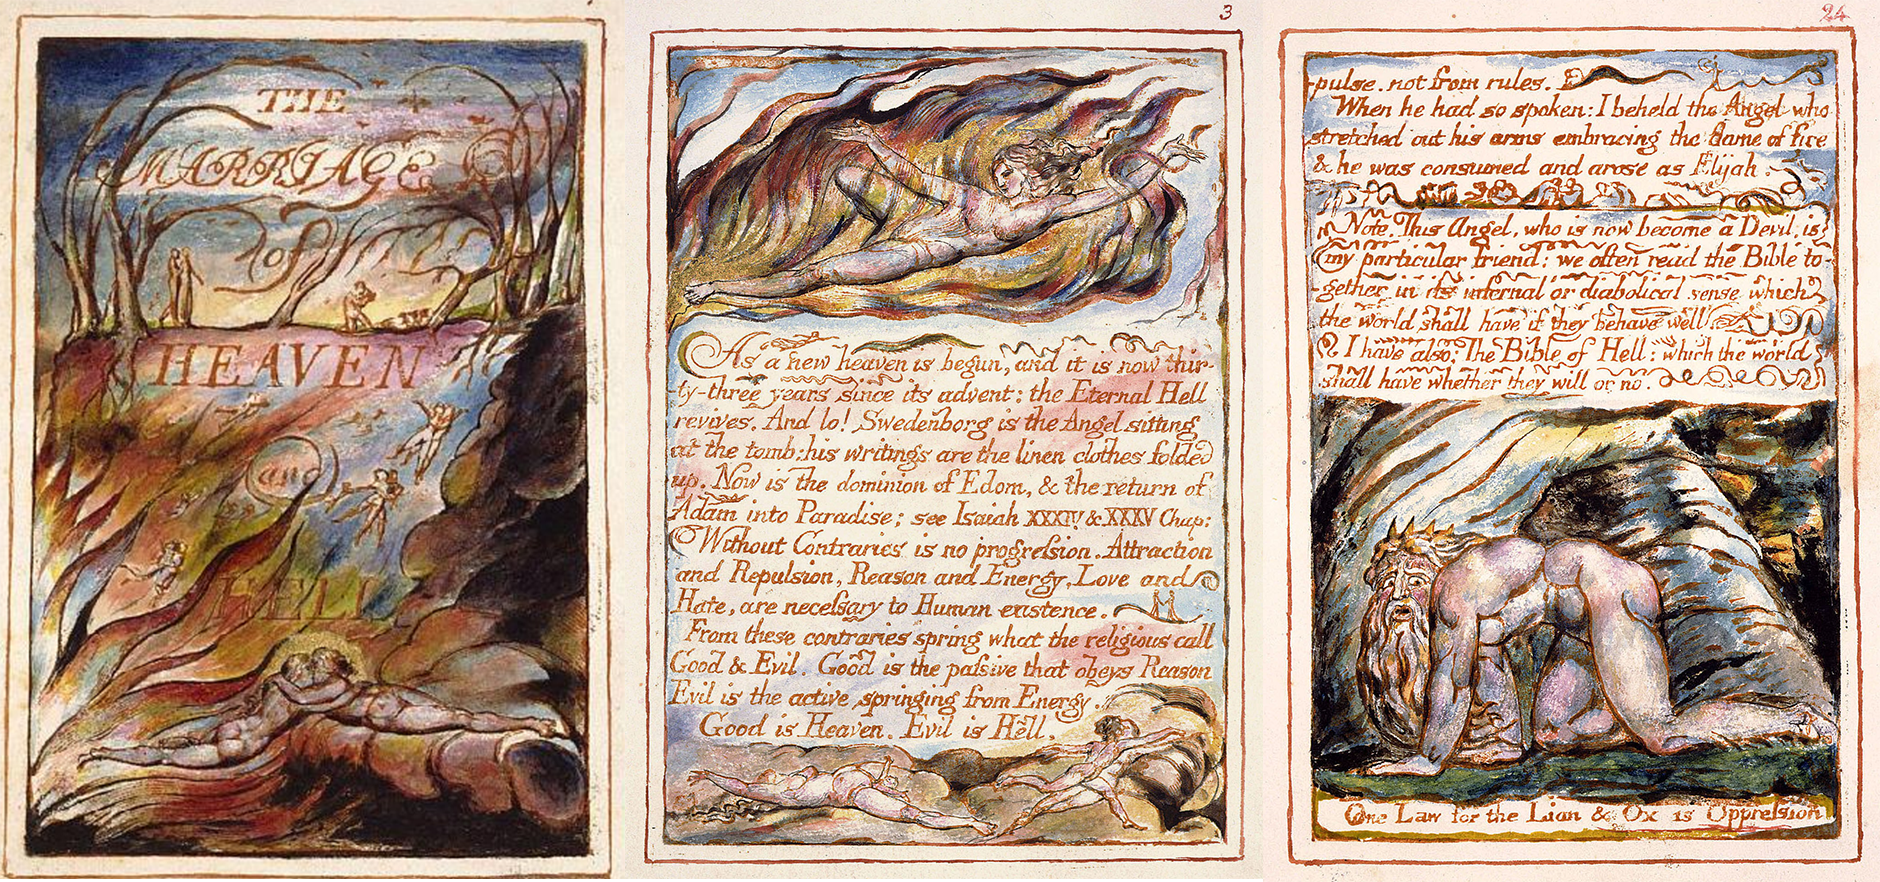 William-Blake-The-Marriage-of-Heaven-and-Hell | typography, css, web design